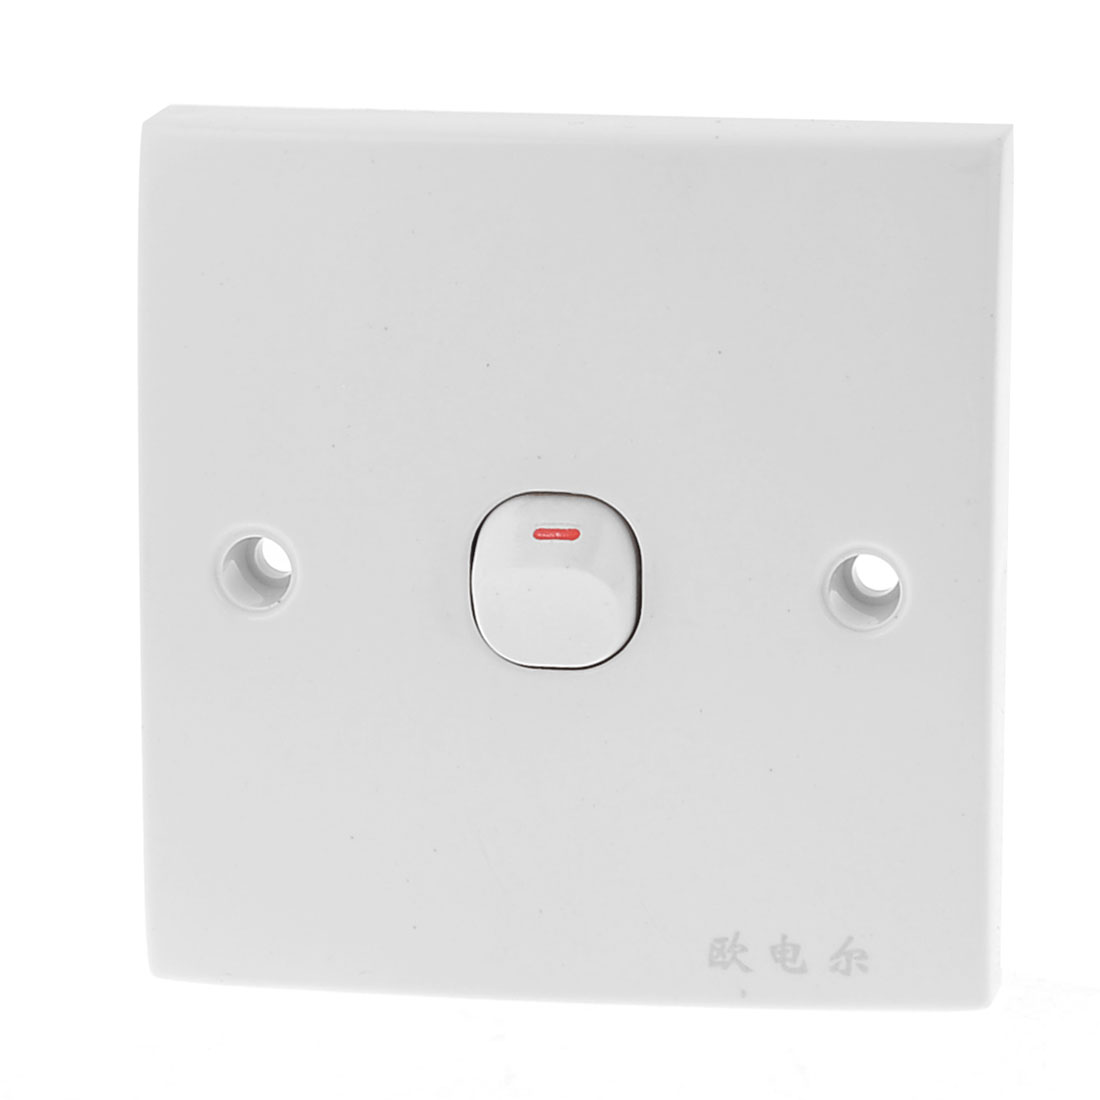 White Square Plastic Housing 1 Gang On/Off Wall Switch Plate 10A 250V